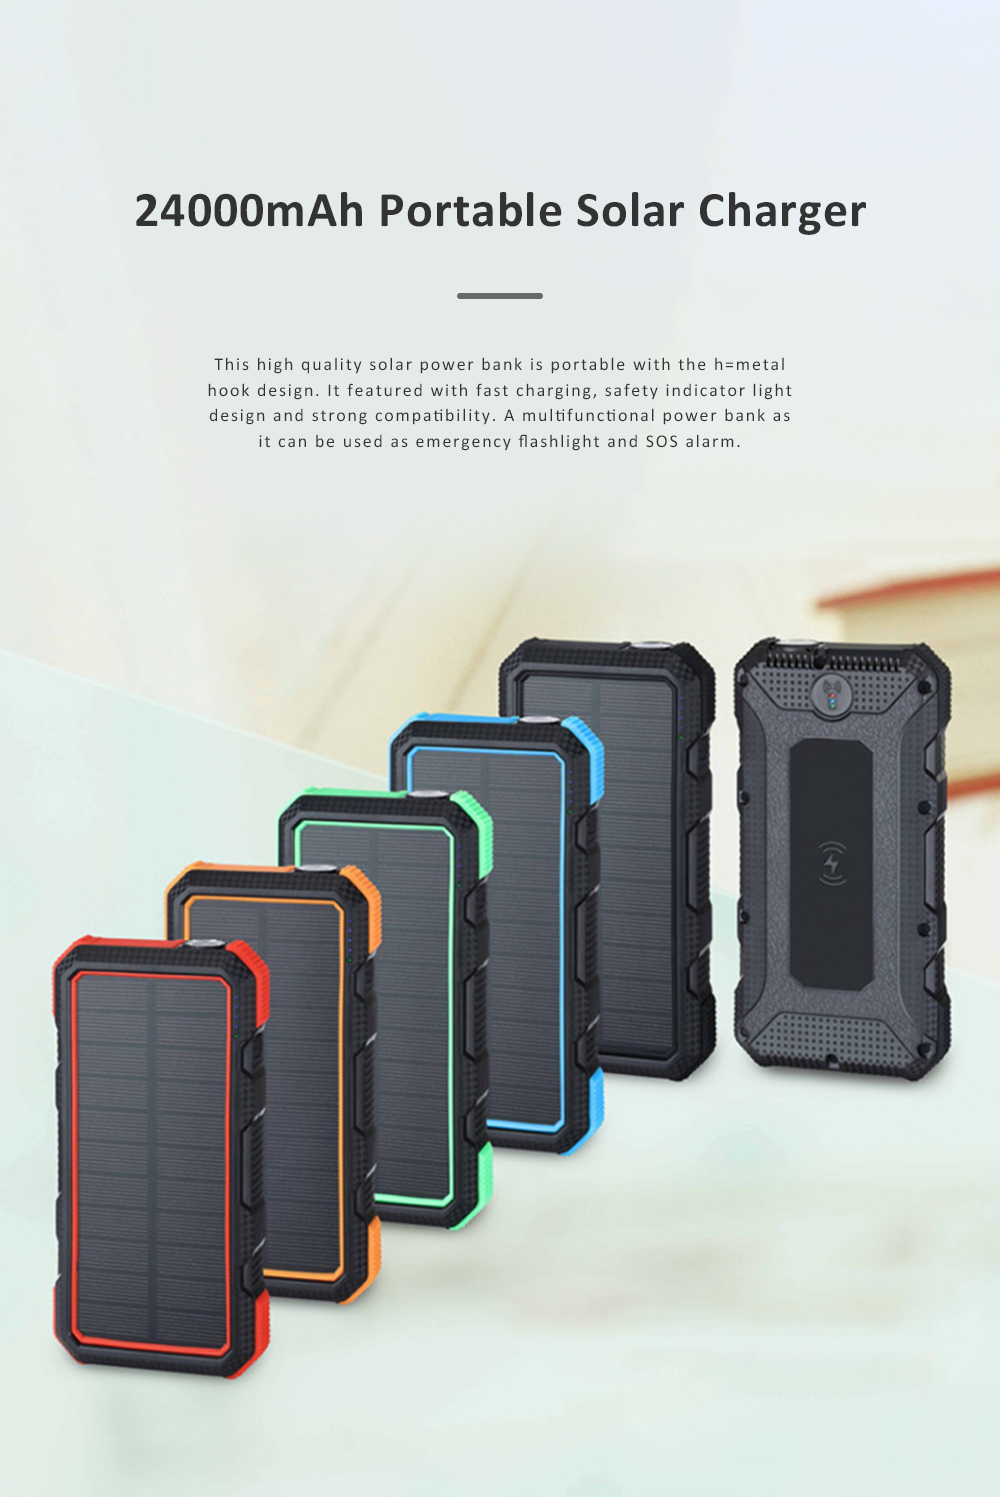 24000mAh Portable Solar Charger Two-way Type-C Power Bank with Flashlight and Metal Hook for Mobile Phone iPad MP3 MP4 0